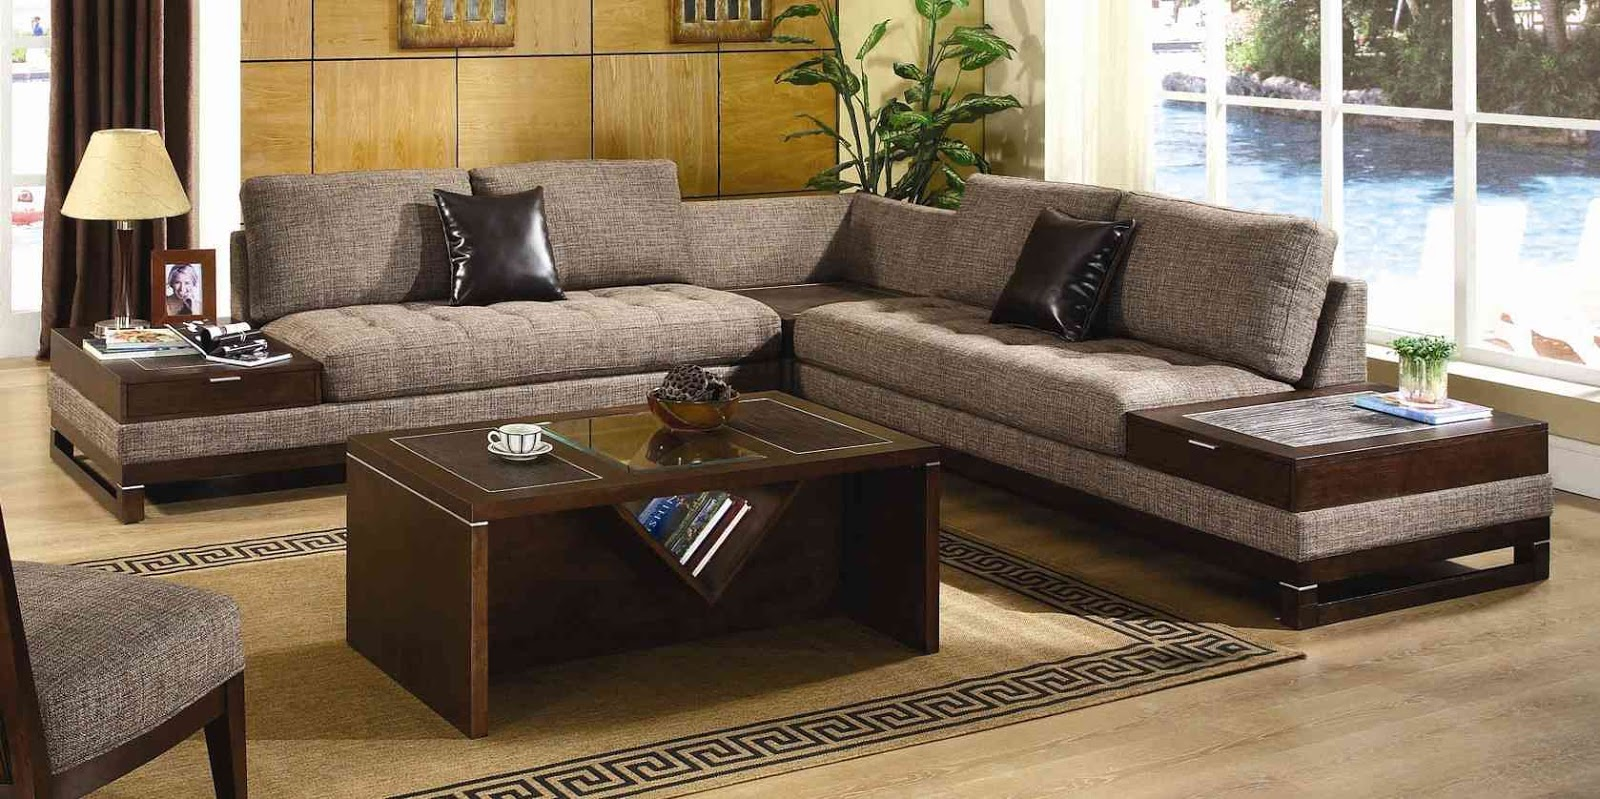 modern contemporary living room furniture. Living Room Furniture Set. Modern Designs Contemporary C